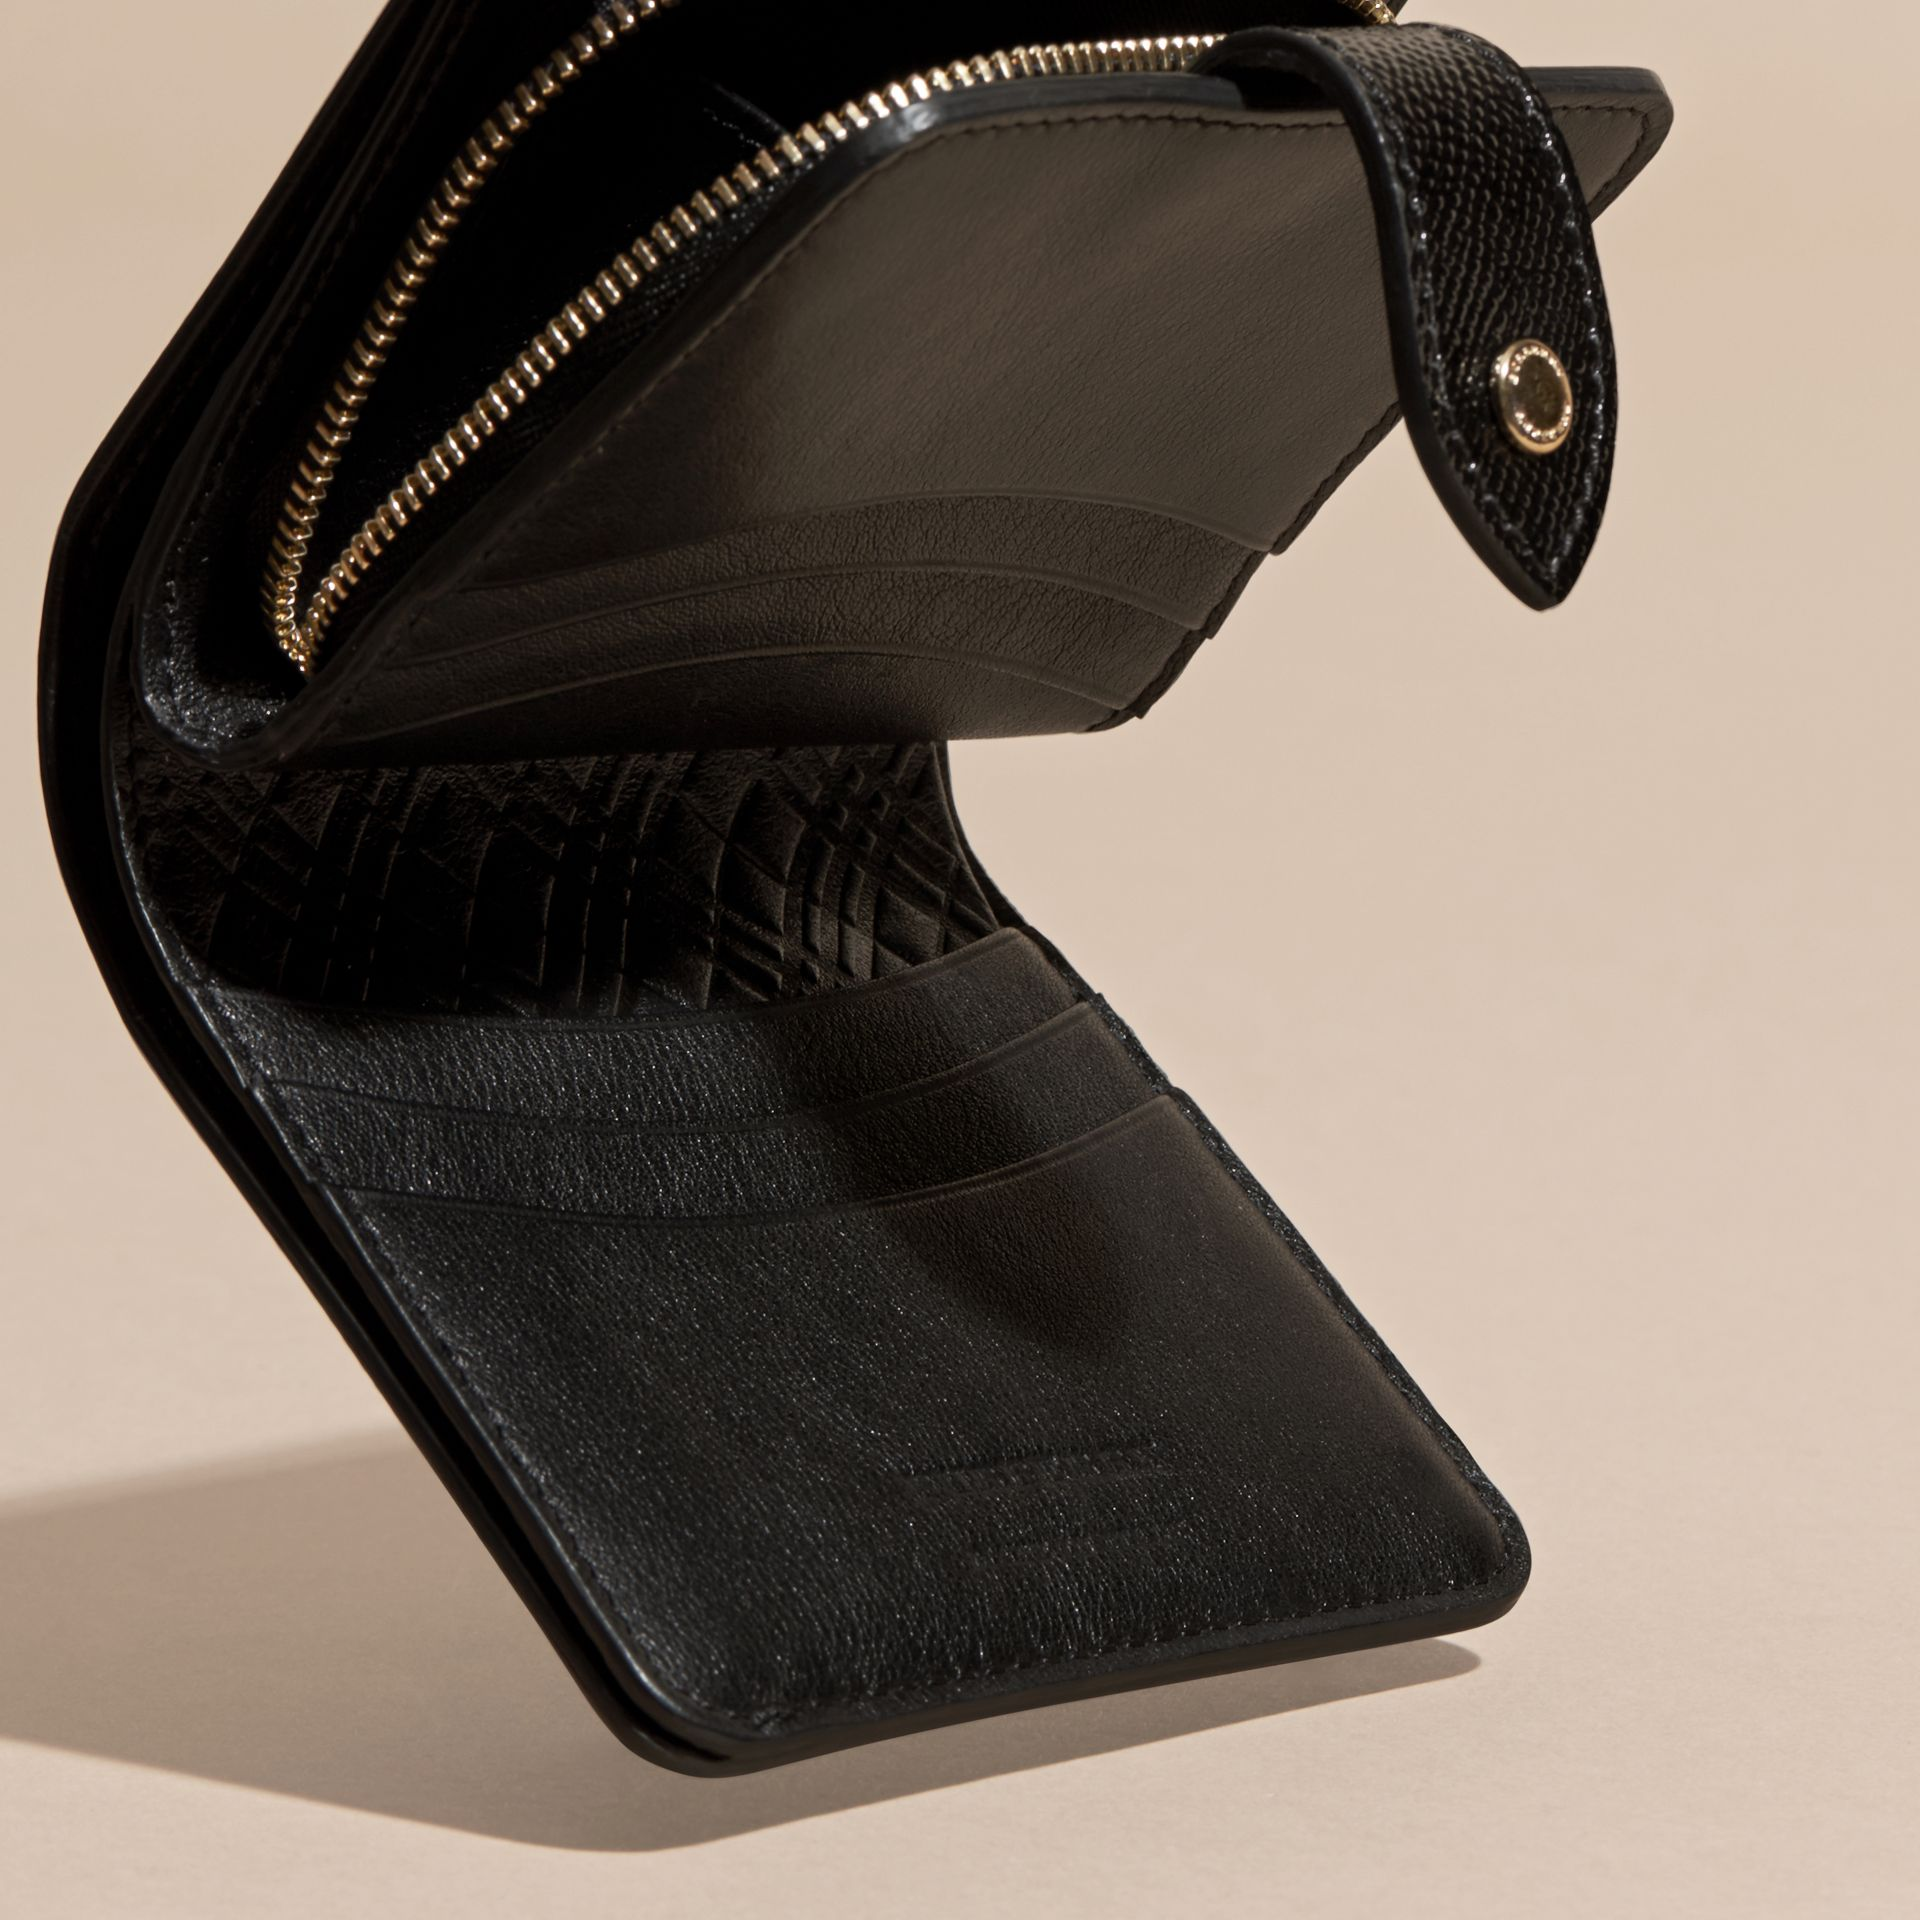 Black Patent London Leather Wallet Black - gallery image 5